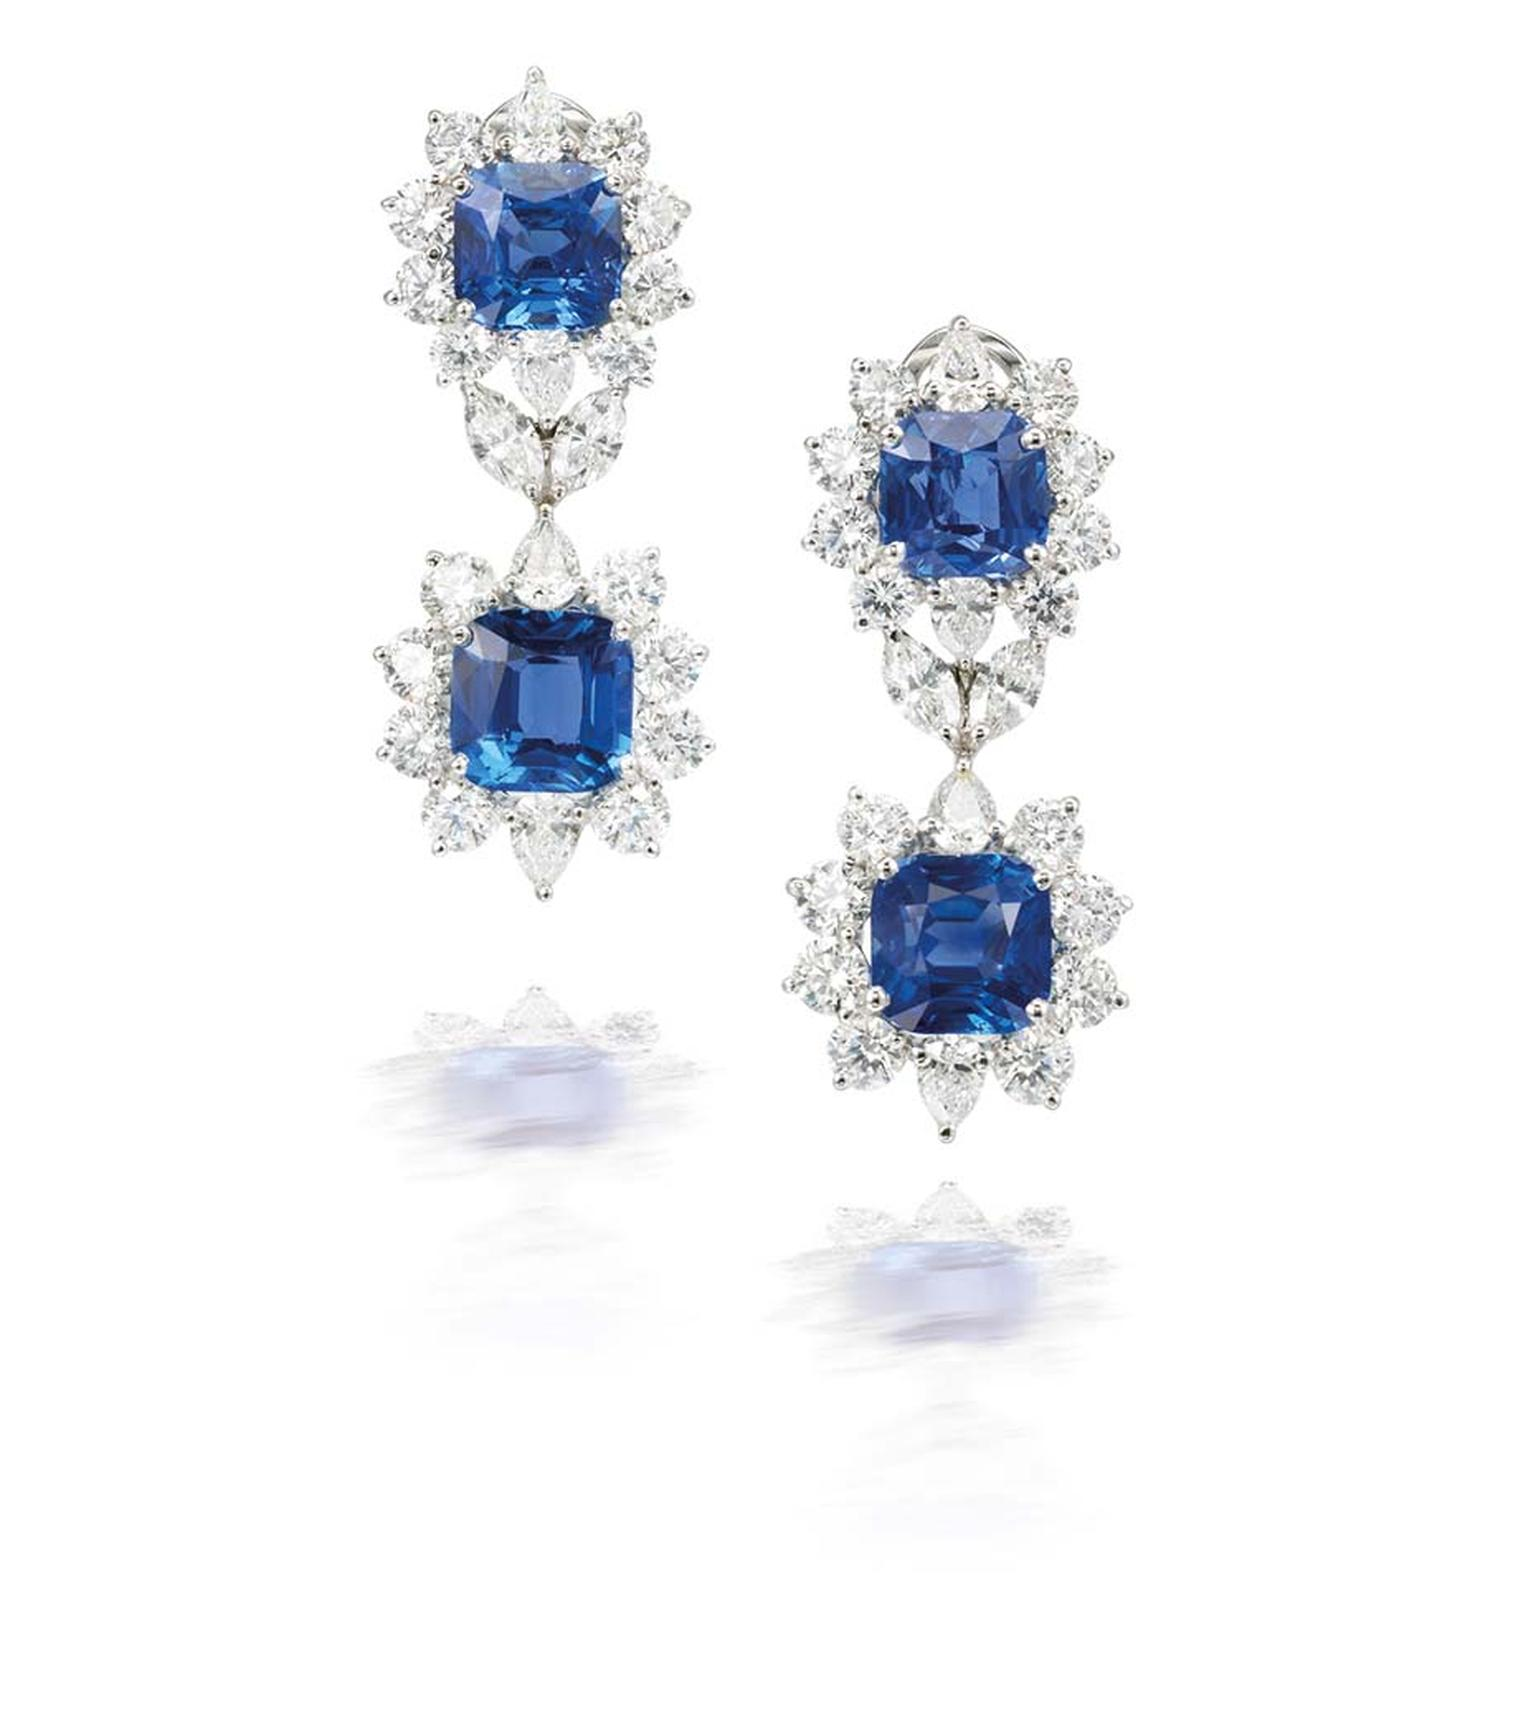 Sapphire and diamond earrings - part of the Amelia suite by Marina B - featuring Ceylon sapphires (estimate for the suite: £305,000-390,000).